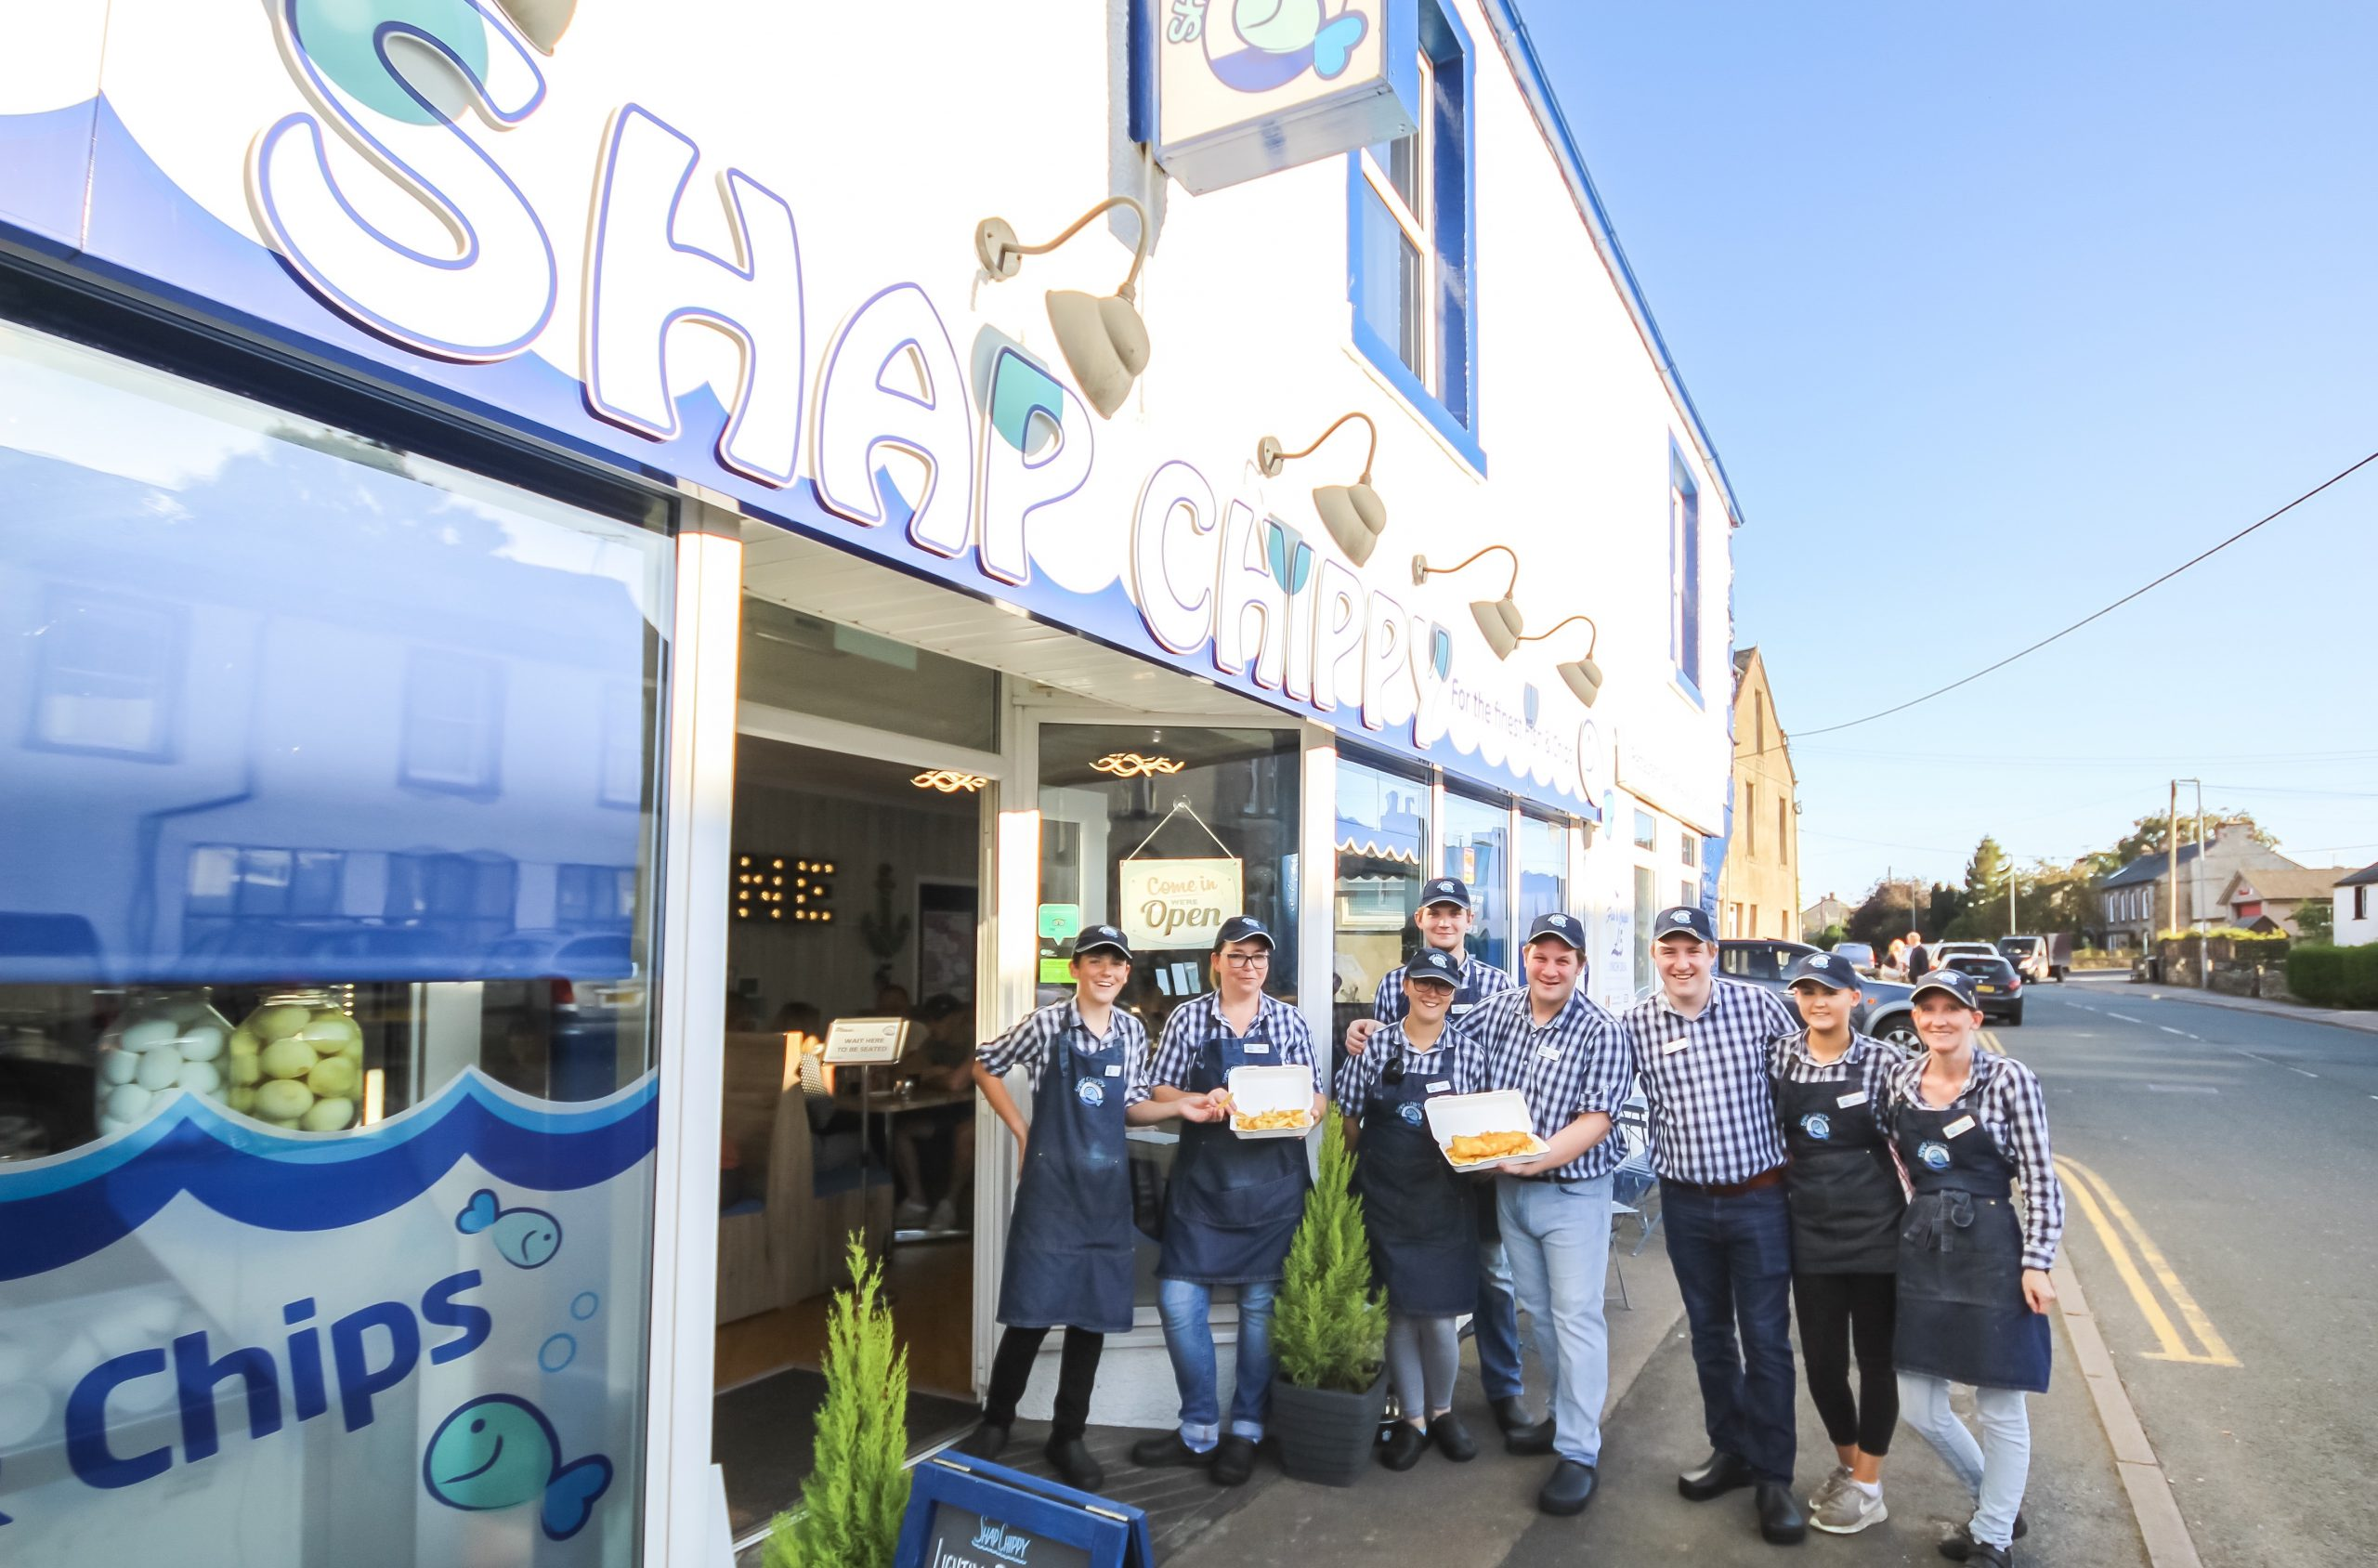 Shap chippy national fish chip awards